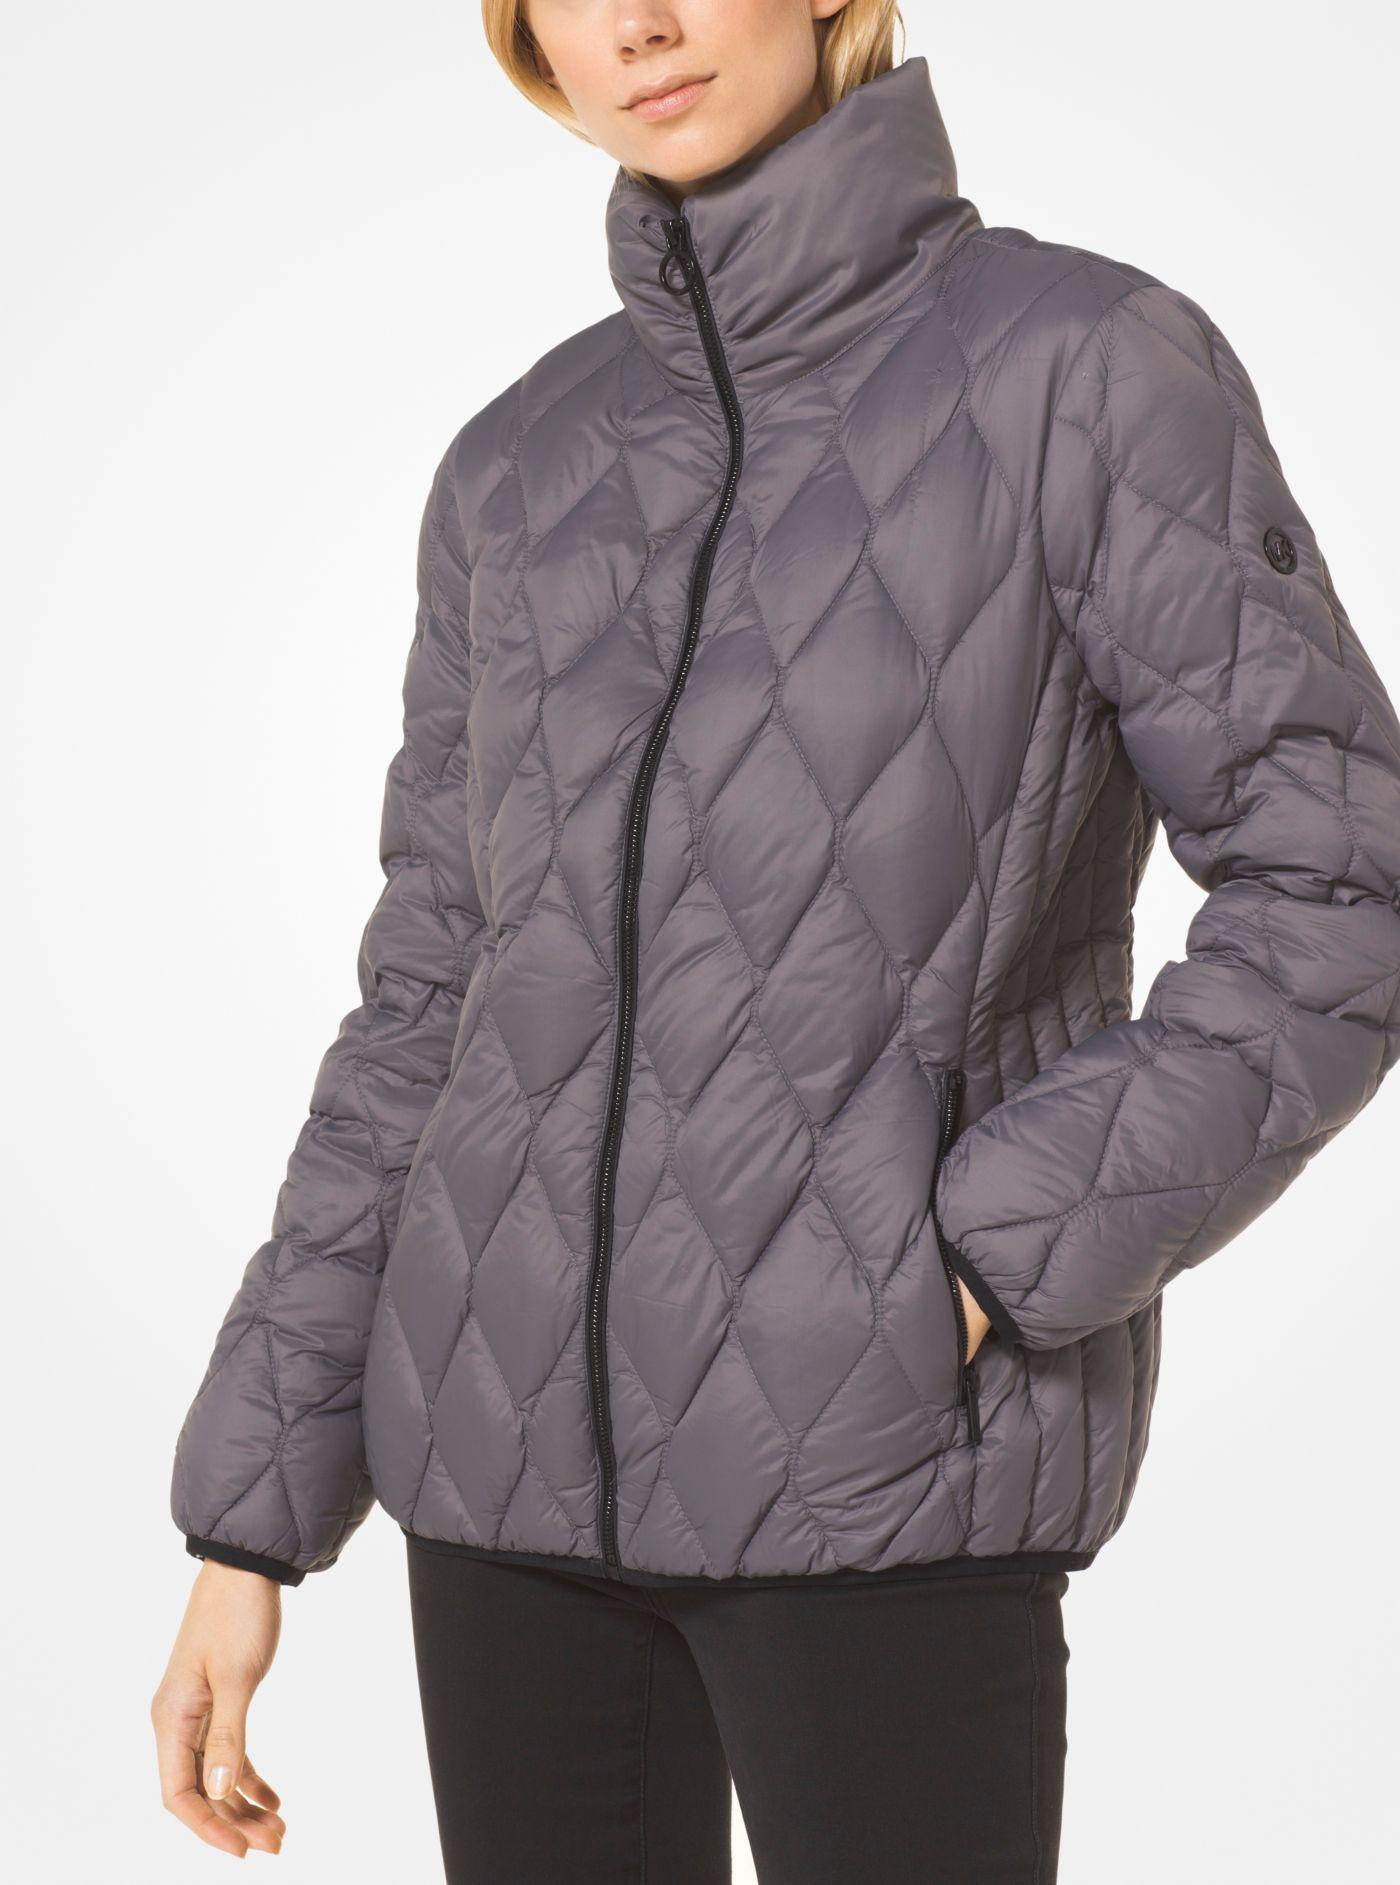 a8bc0f3ec7aa Michael Kors Quilted Nylon Packable Down Jacket in Gray - Lyst